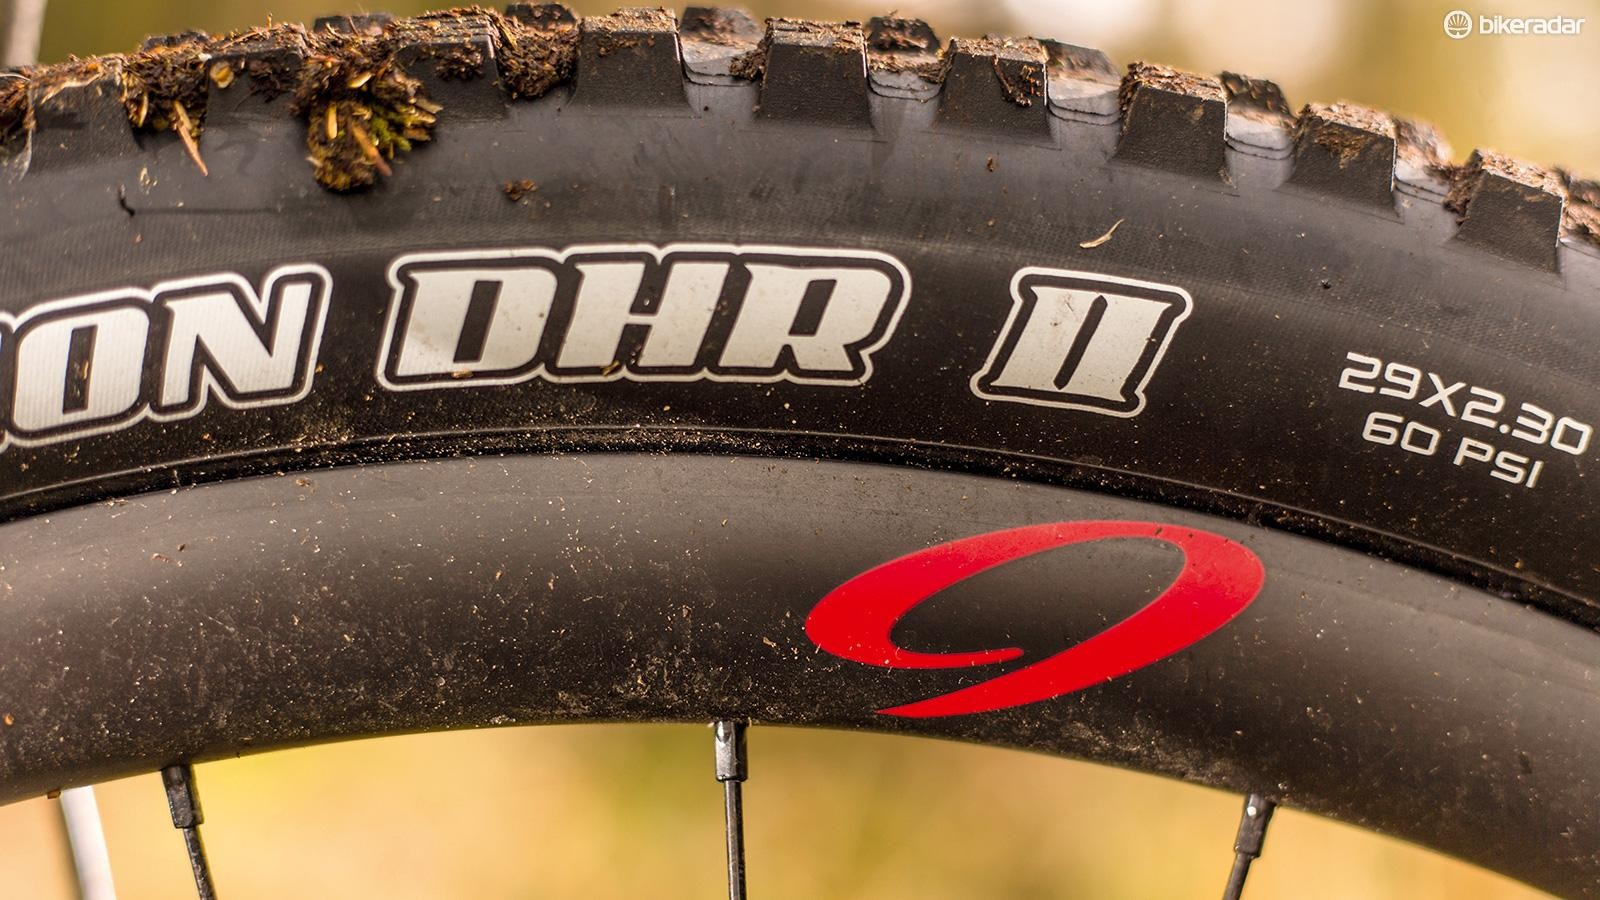 Niner has licensed Stan's tubeless tech